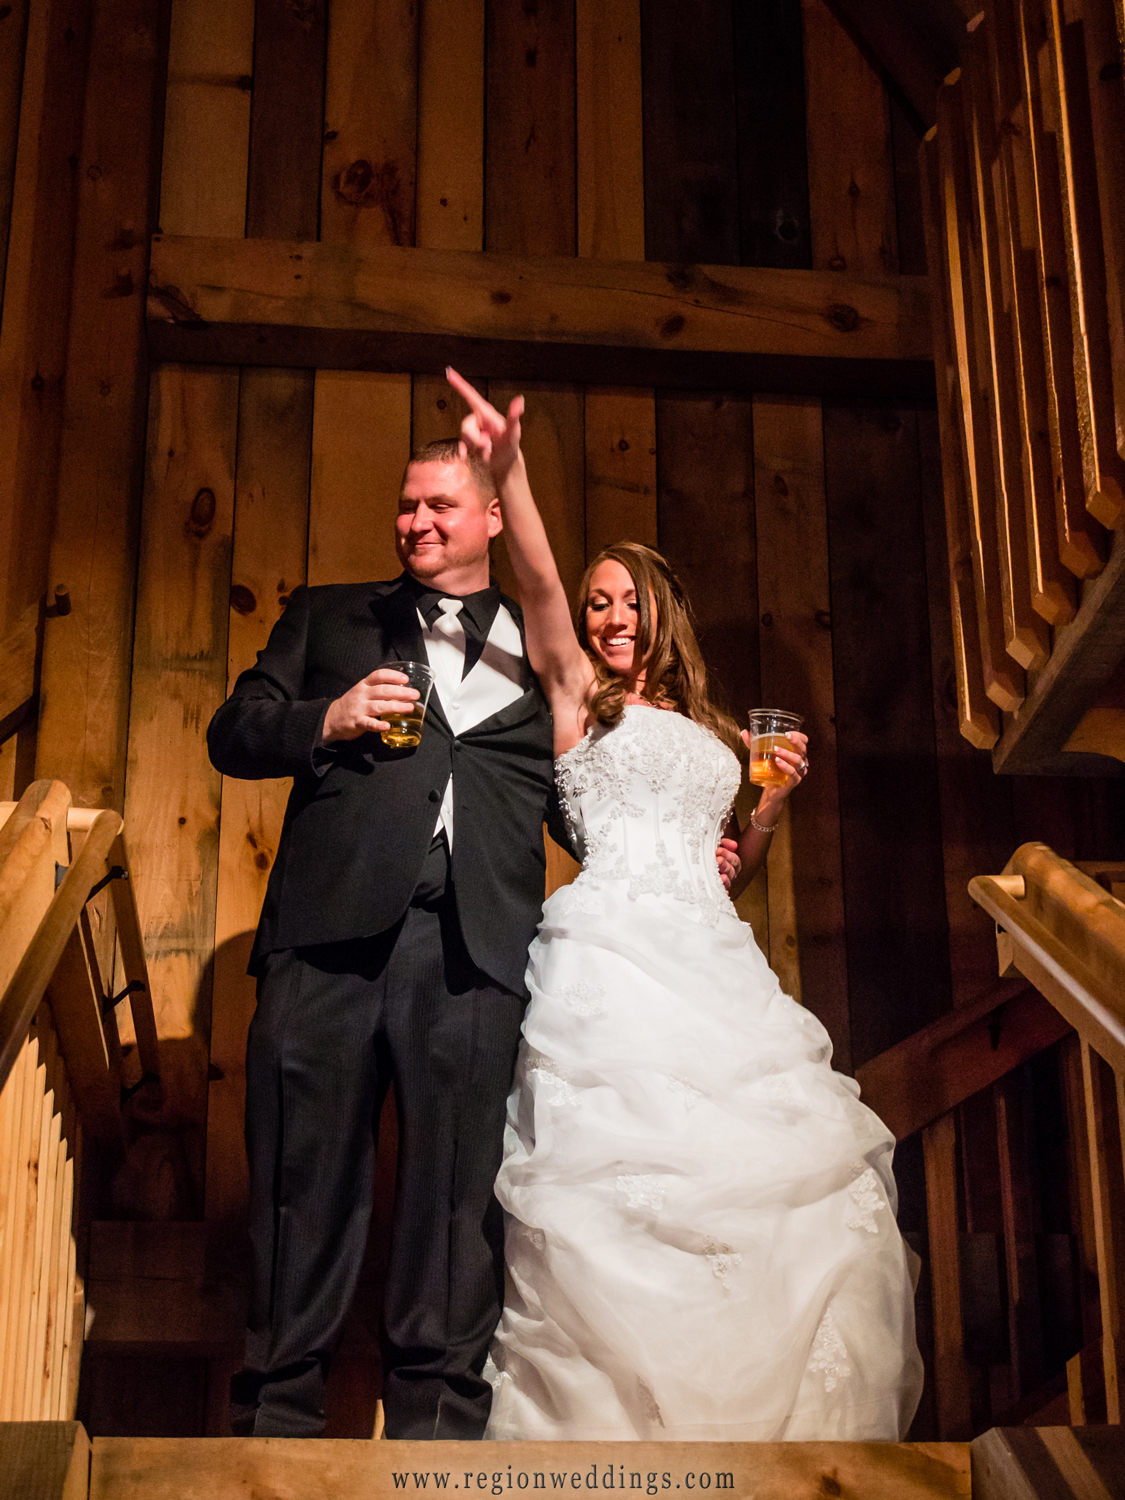 The bride and groom get introuduced at their wedding reception at the rustic looking apple orchard.